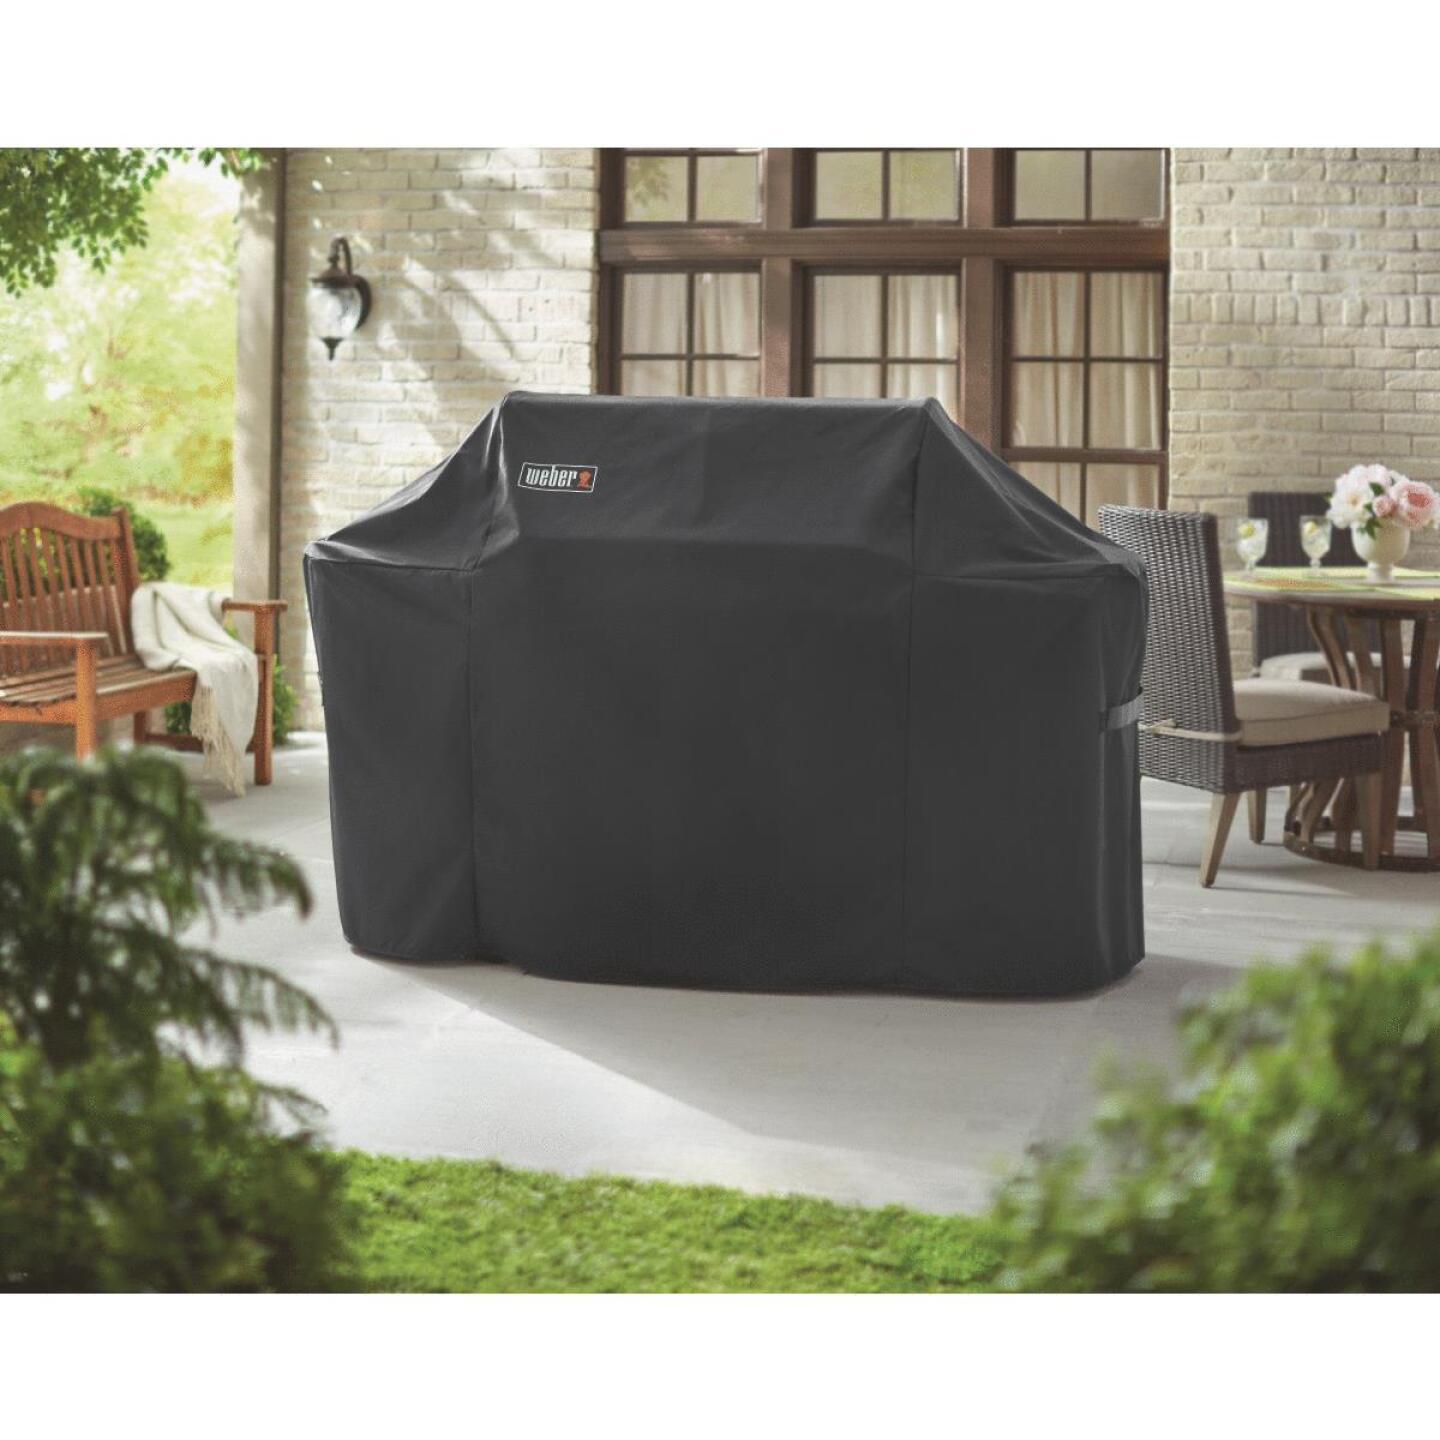 Weber Summit 600S Premium 75 In. Black Polyester Grill Cover Image 3